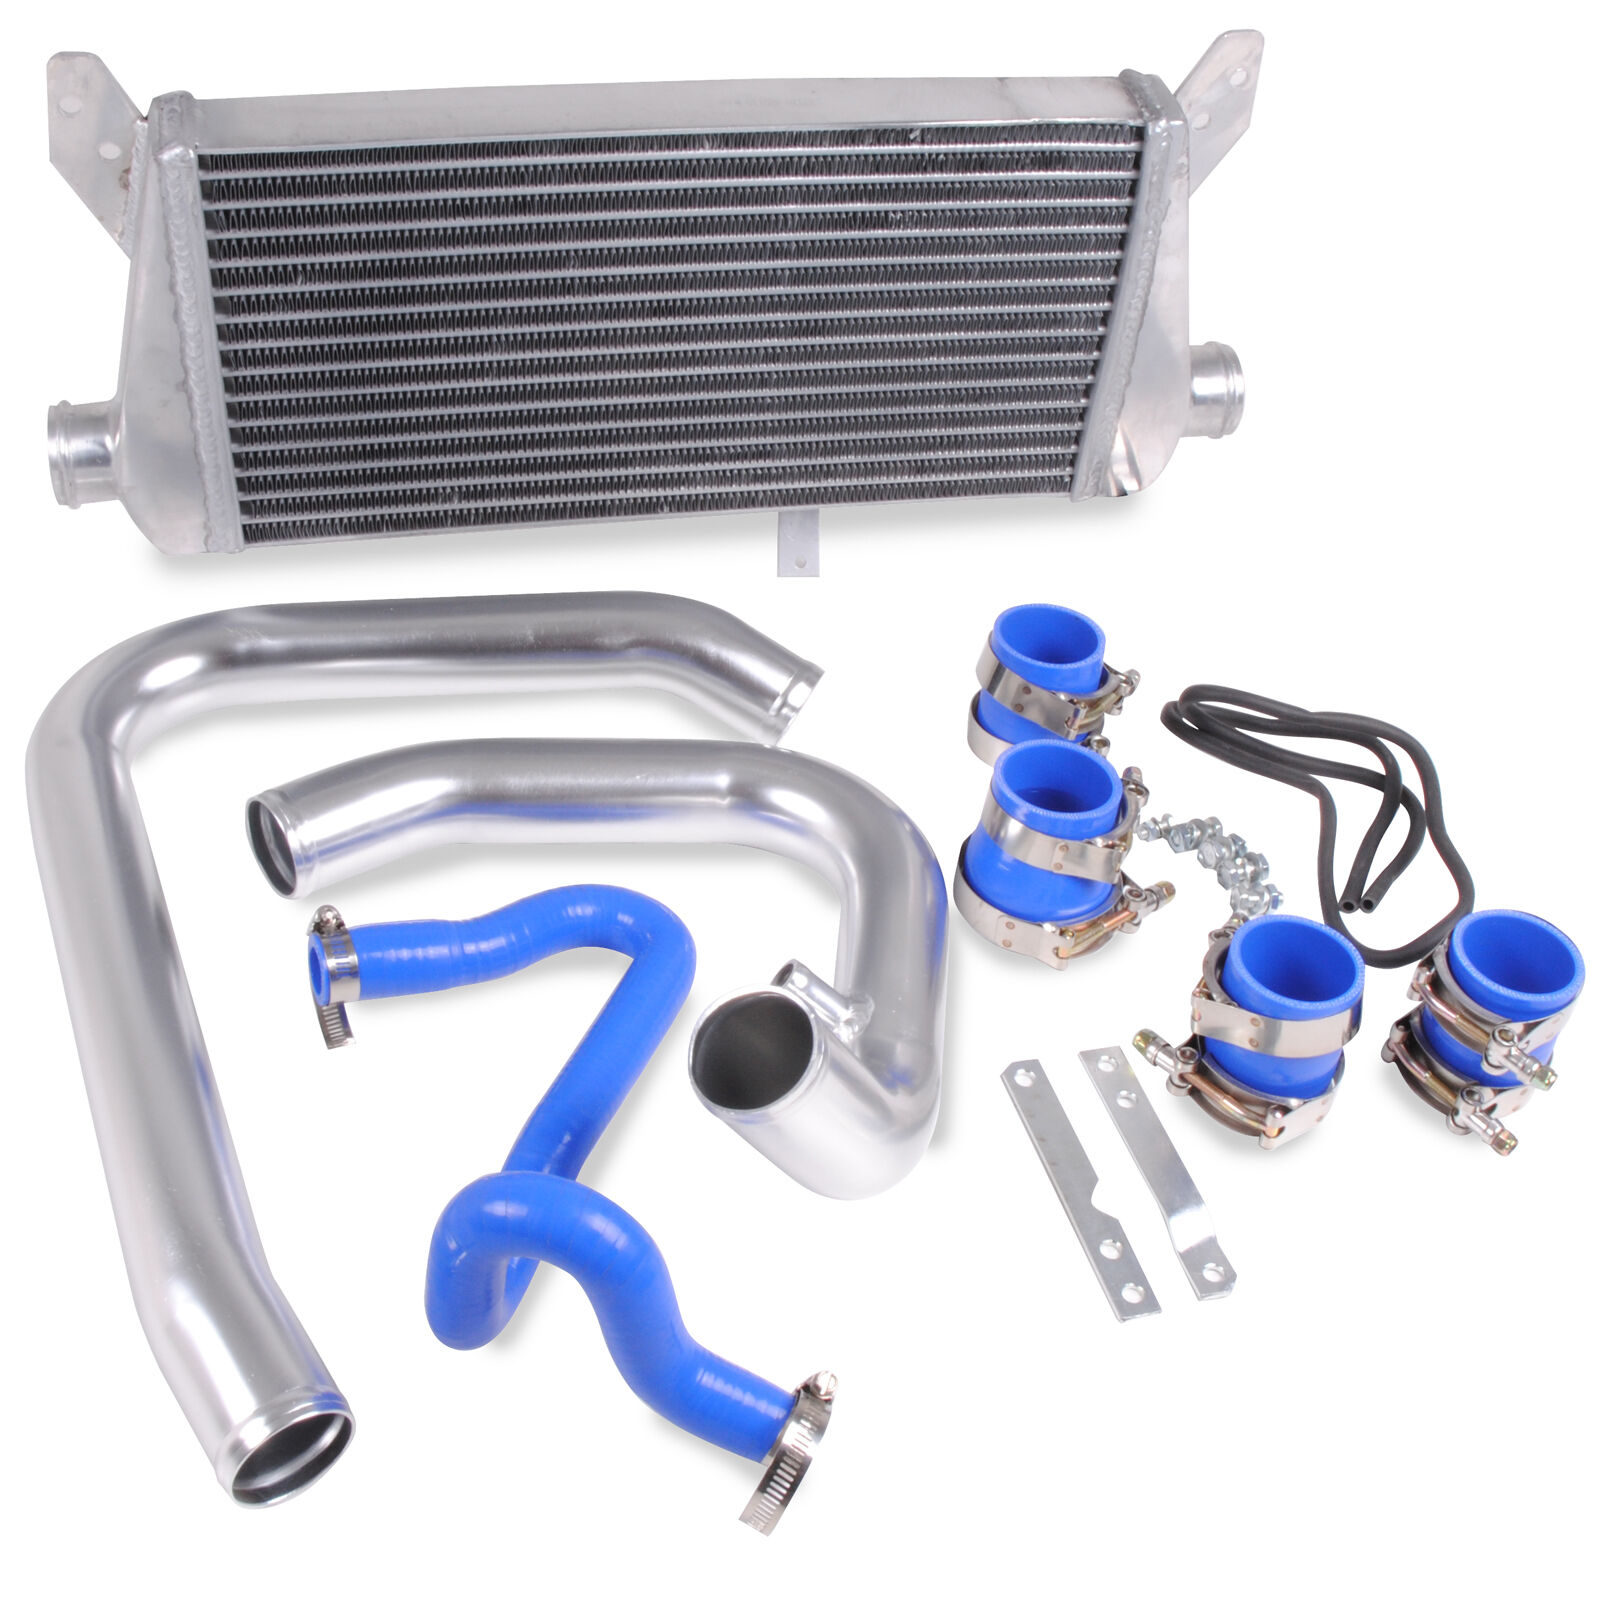 Turbo Kit Daihatsu: ALUMINIUM ALLOY FMIC FRONT MOUNT INTERCOOLER KIT FOR VW